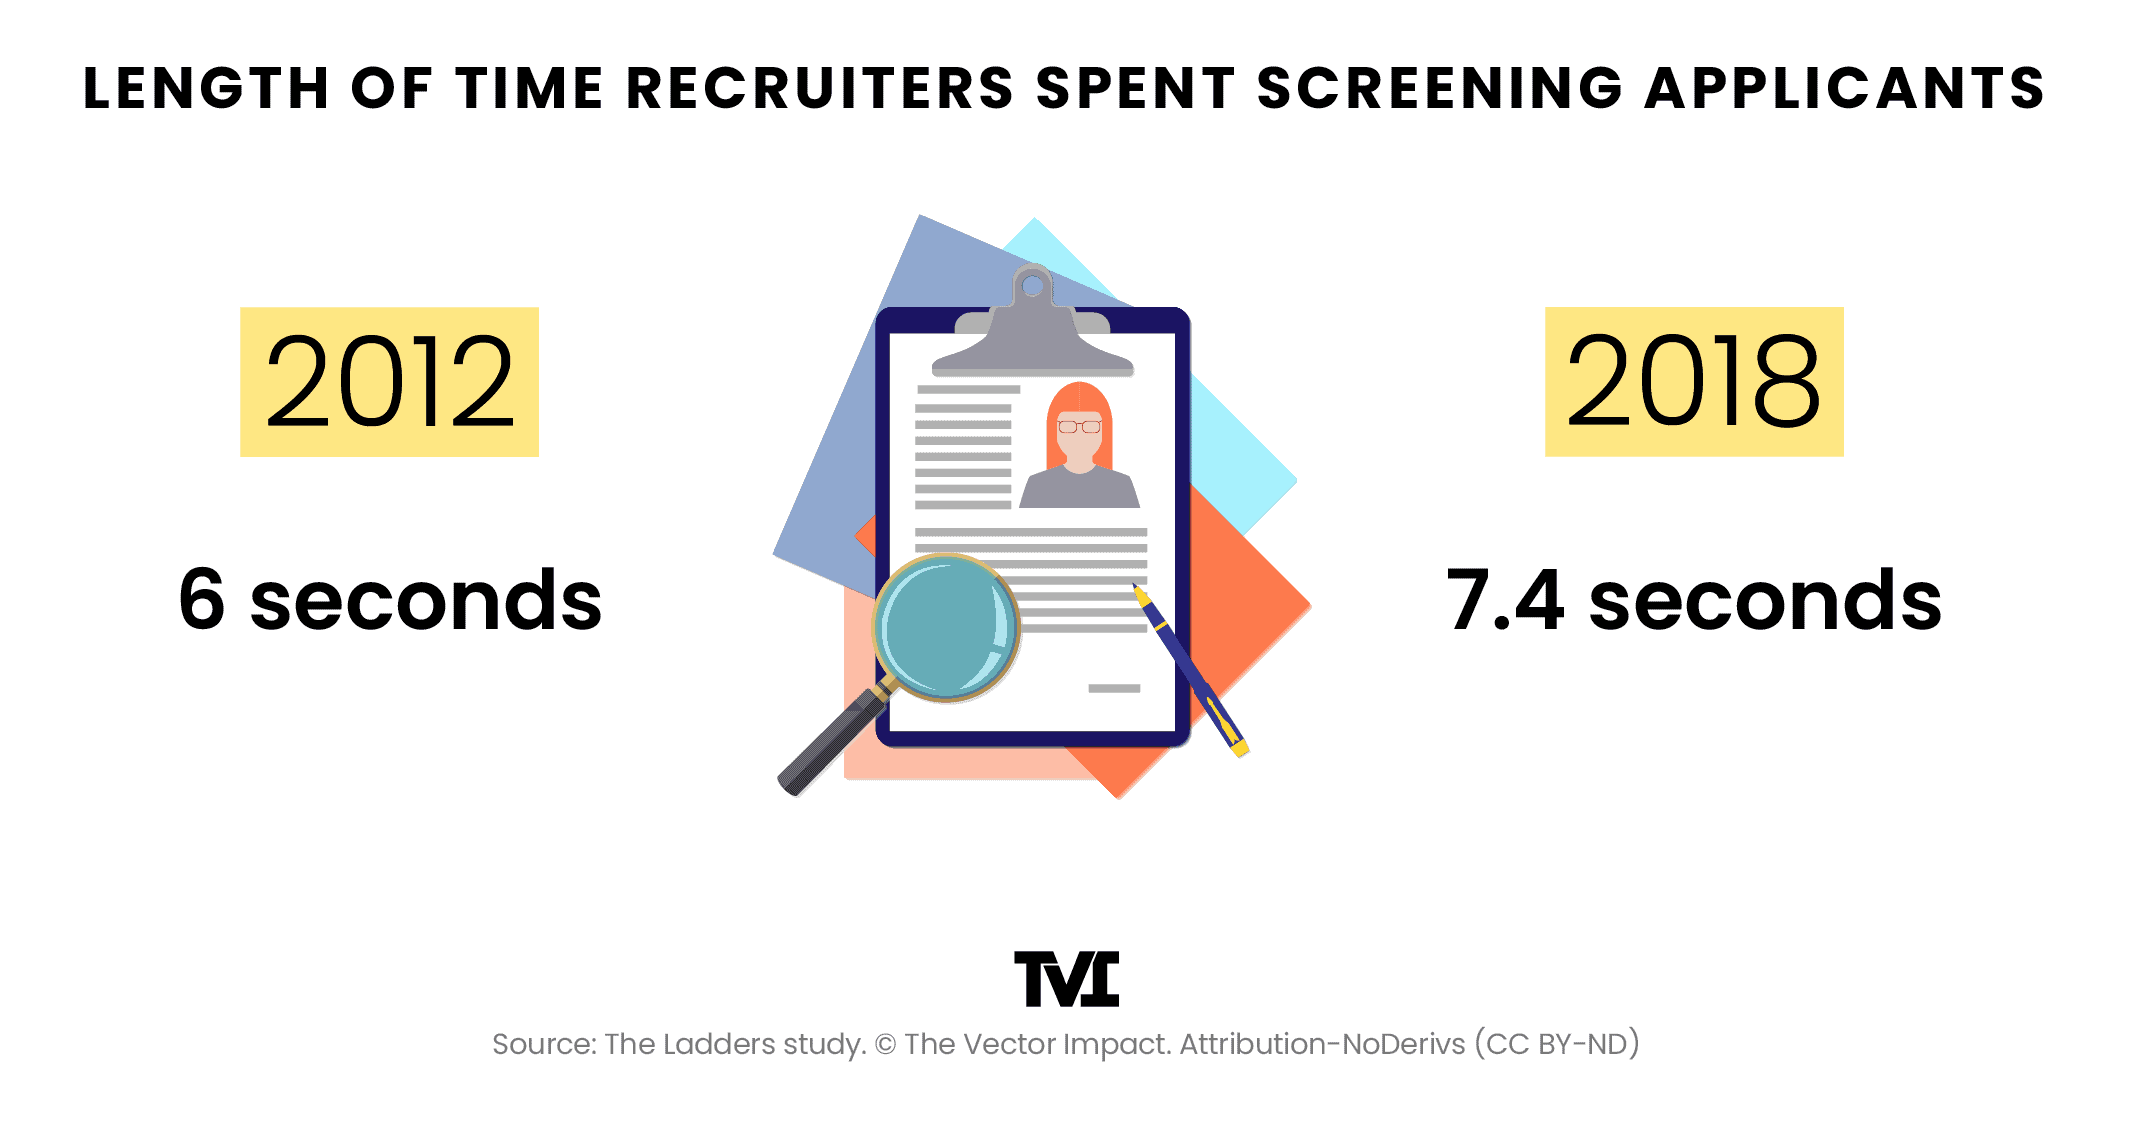 Length of time recruiters spent screening applicants: 2012 (6 seconds) vs. 2018 (7.4 seconds)